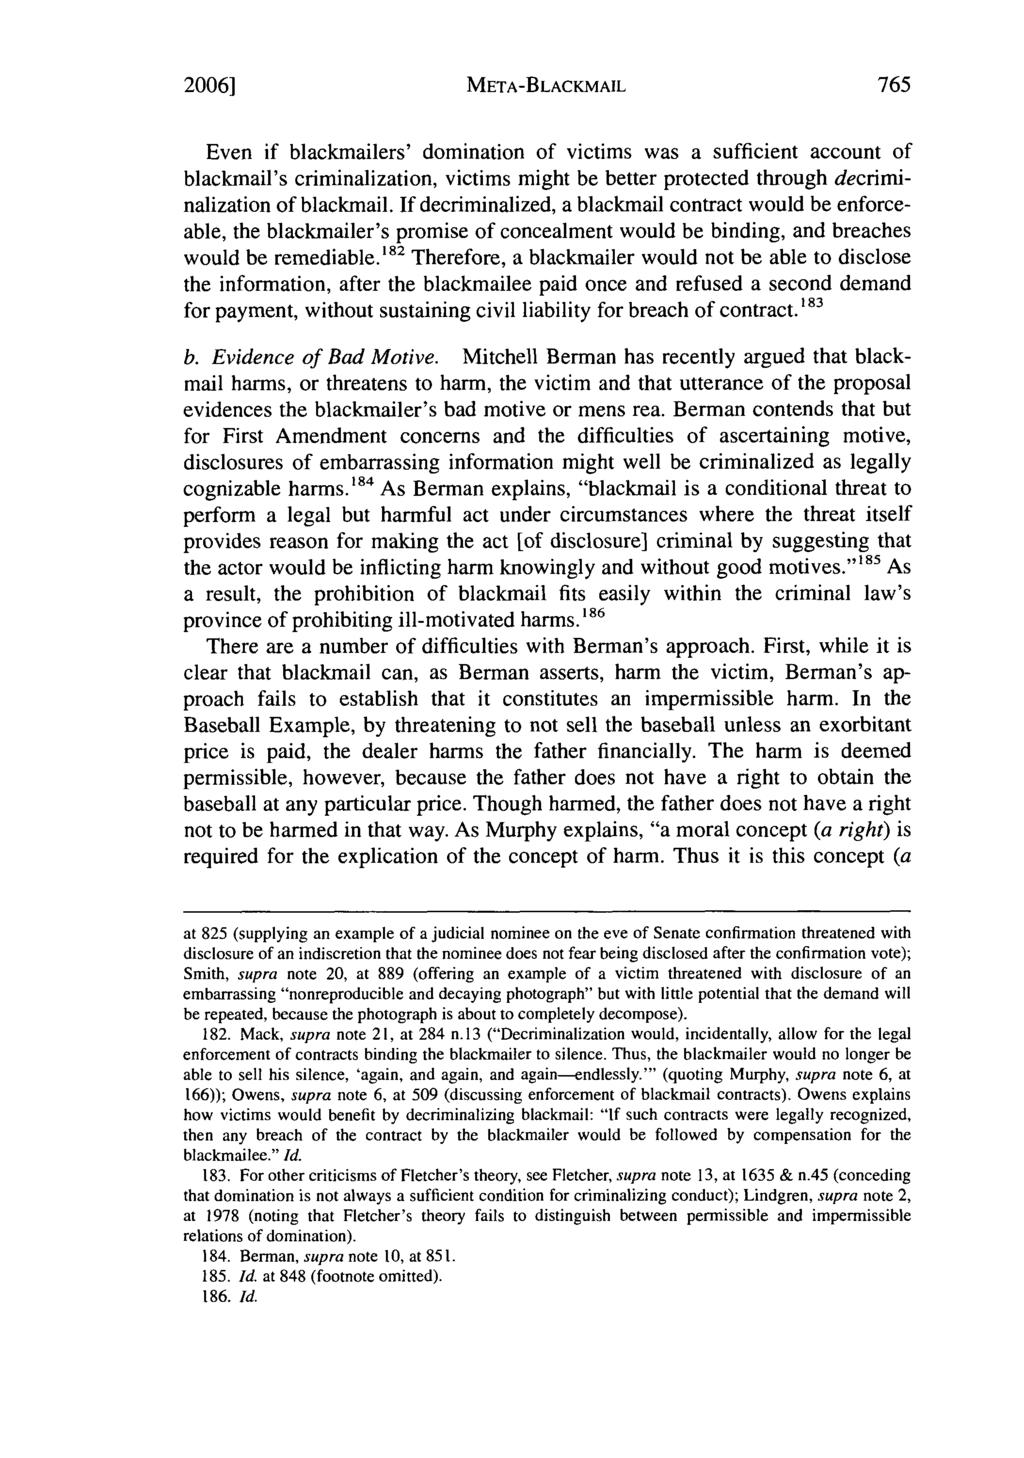 2006] META-BLACKMAIL Even if blackmailers' domination of victims was a sufficient account of blackmail's criminalization, victims might be better protected through decriminalization of blackmail.